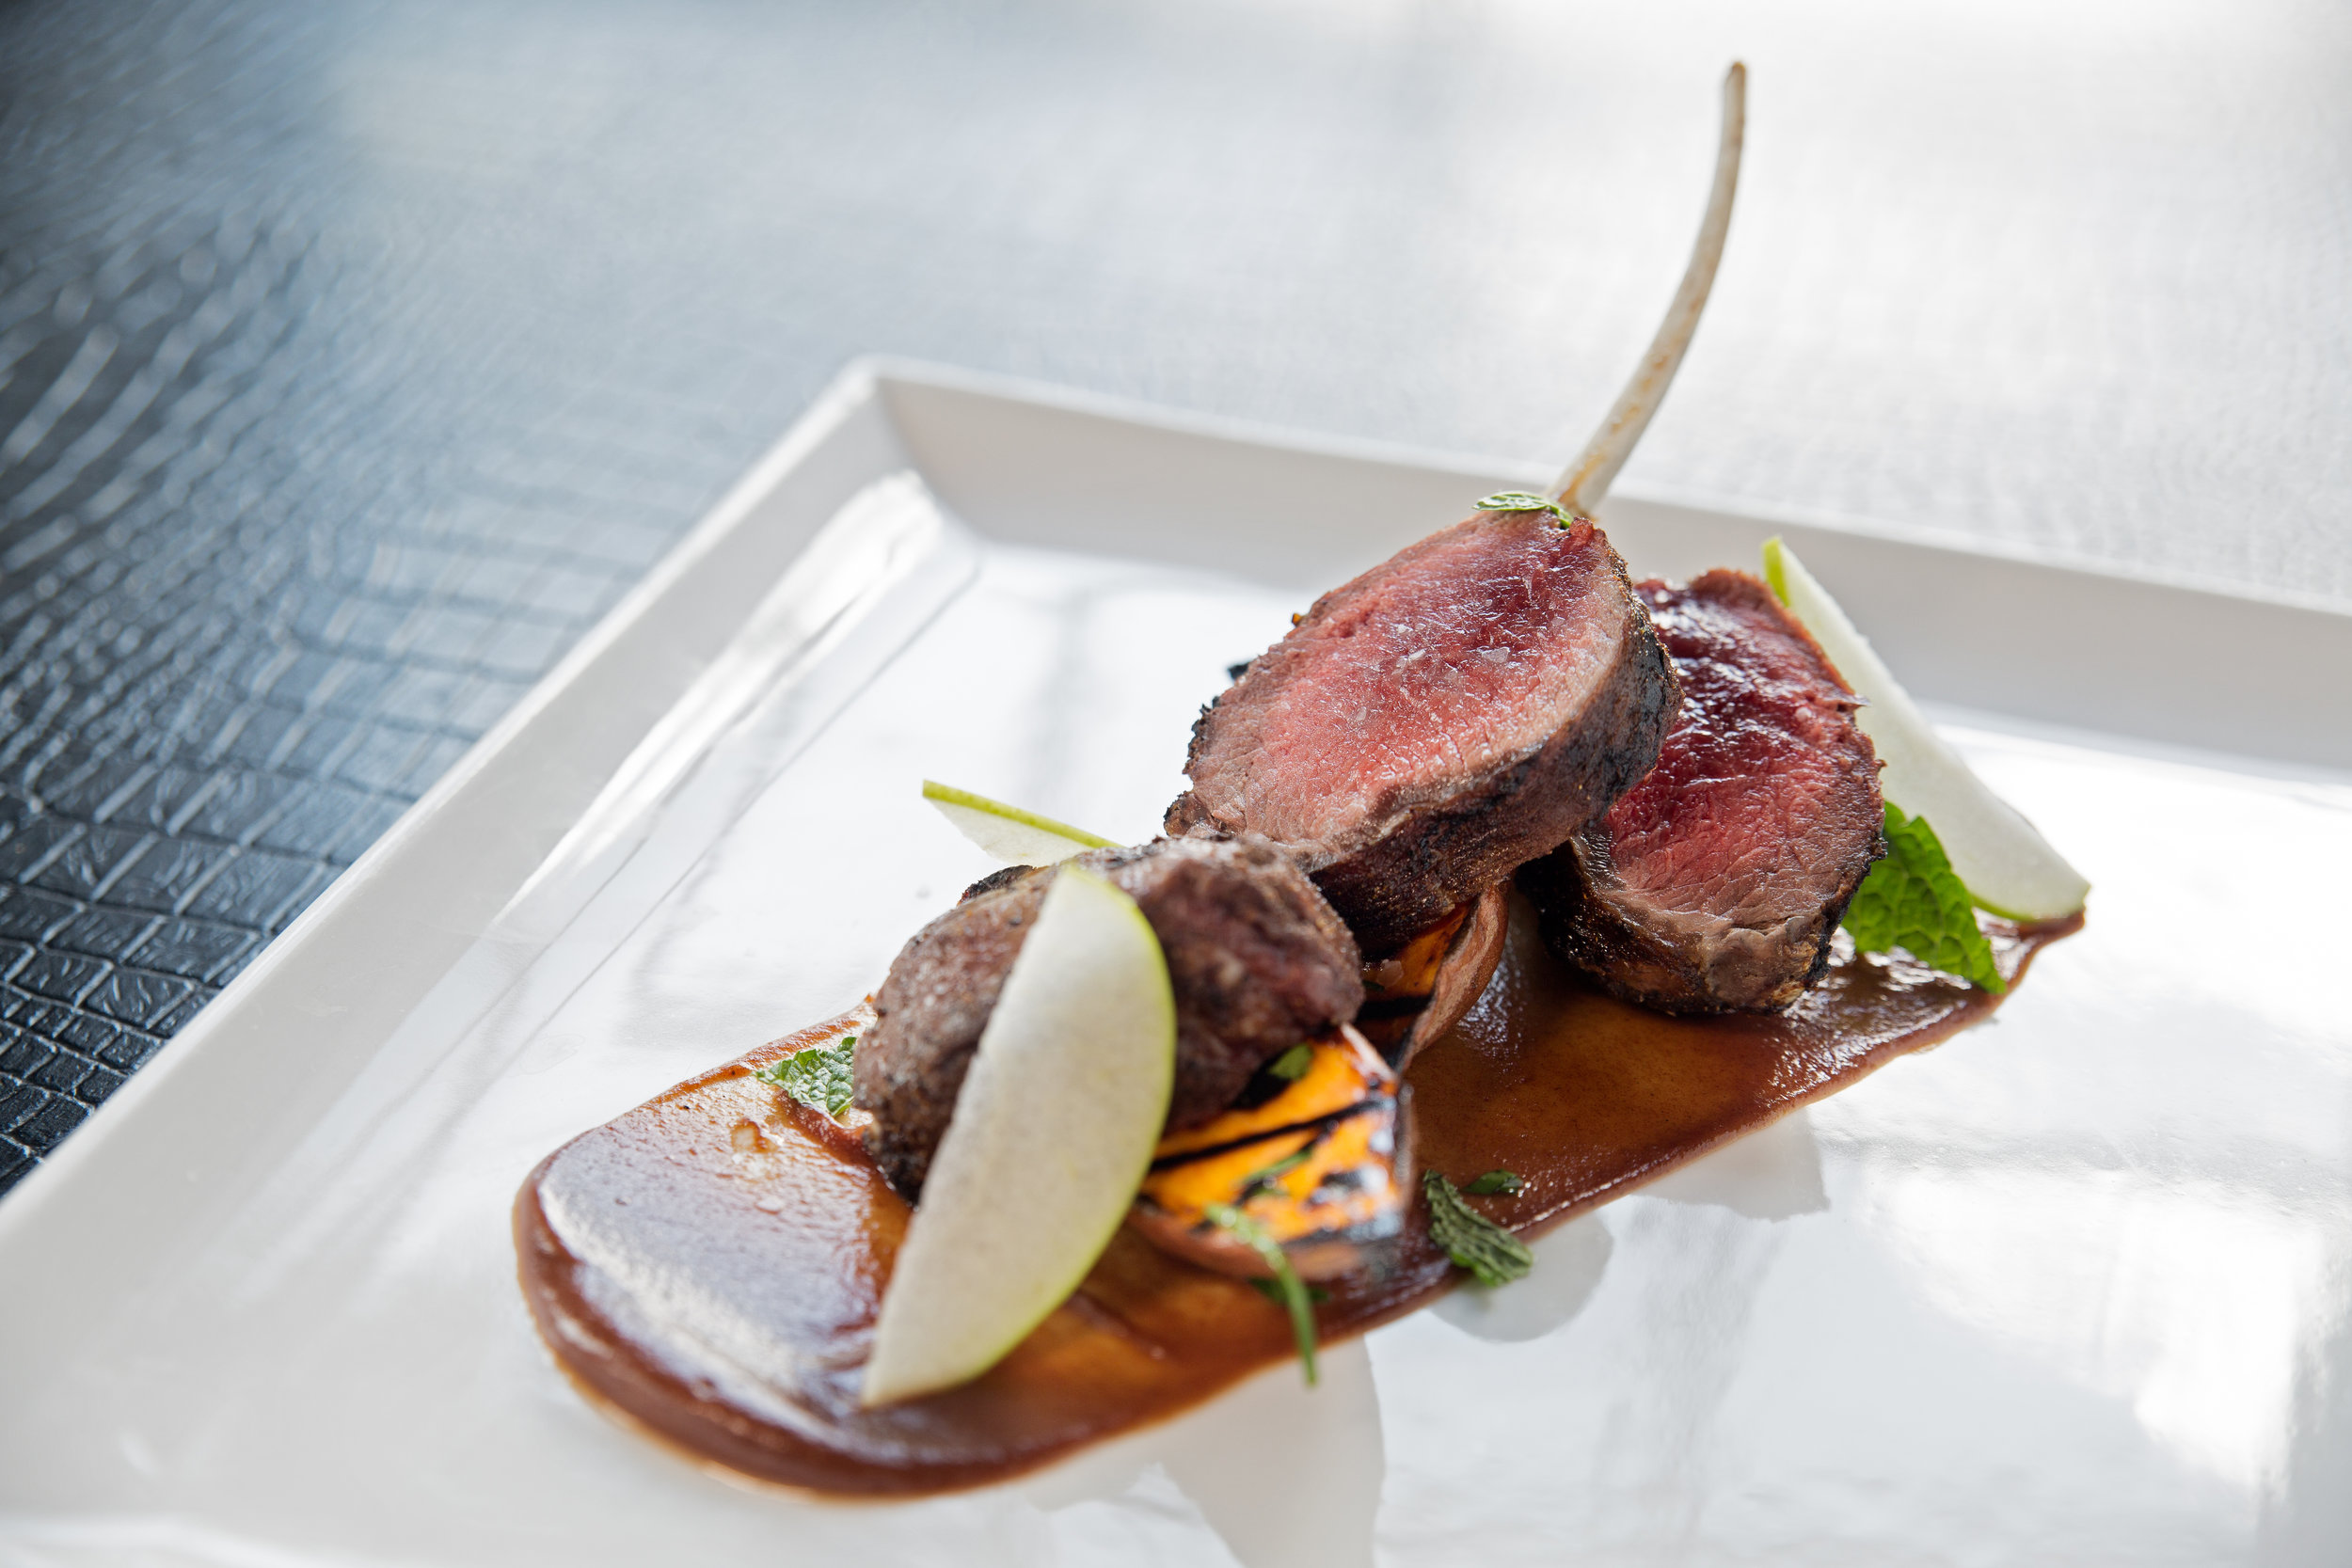 Spice-rubbed rack of lamb with sweet potato, shaved apple and date chutney